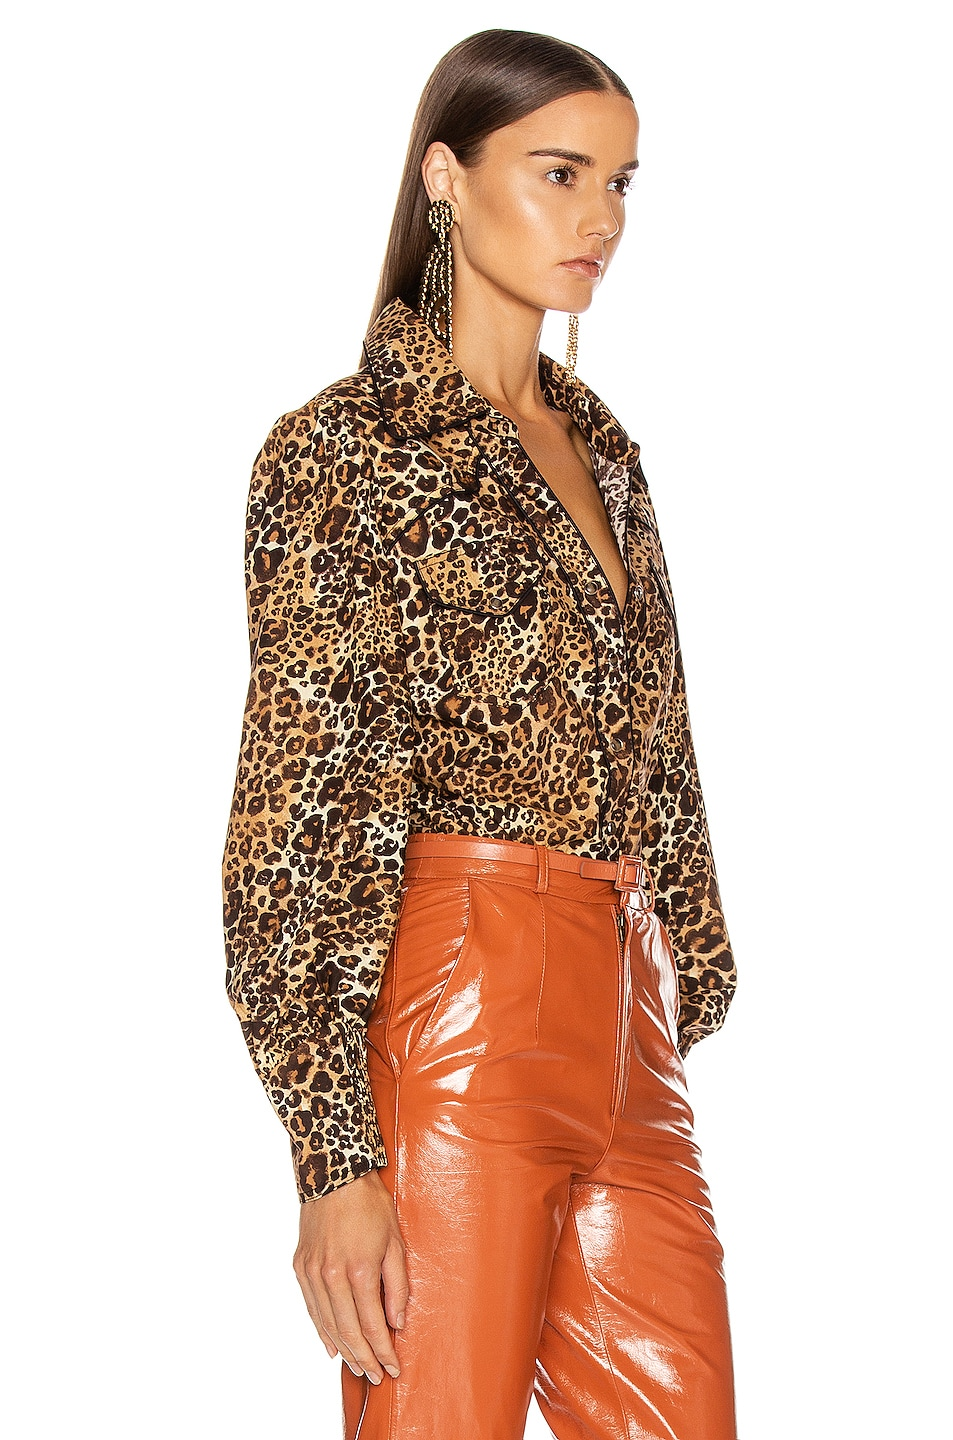 Image 2 of Johanna Ortiz African Roots Top in Leopard Classic